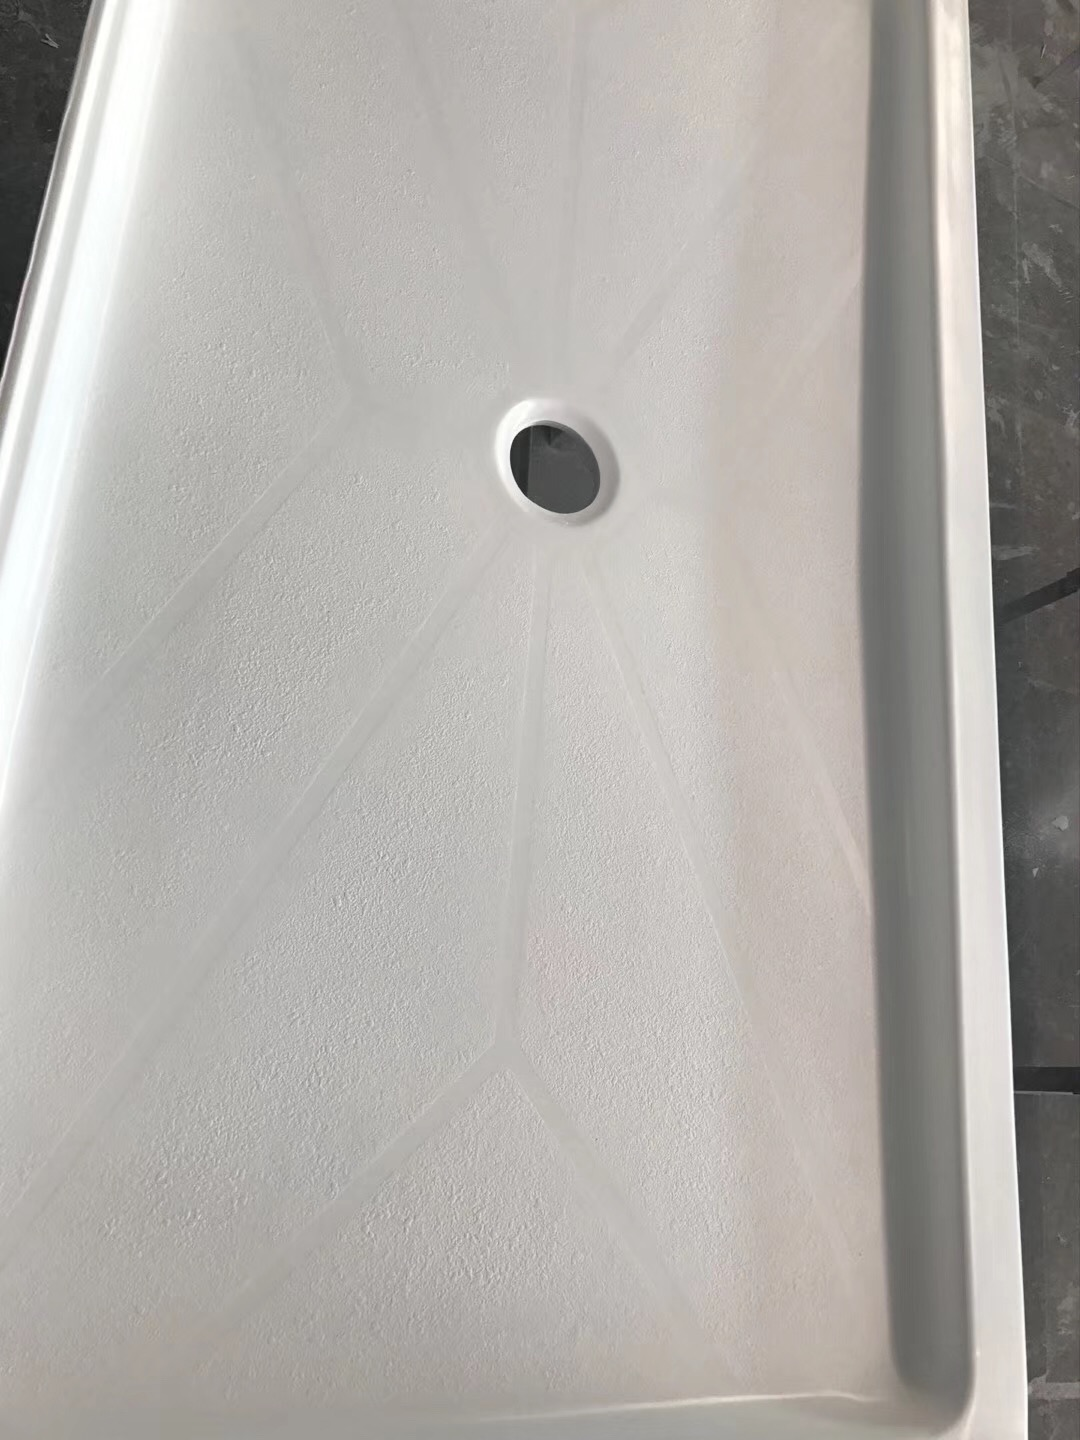 Lowes Marble Tile Cultured Marble Slabs For Sale Cultured Marble Manufacturers Faux Marble Bathroom Cultured Marble Sheets For Shower White Cultured Marble Shower